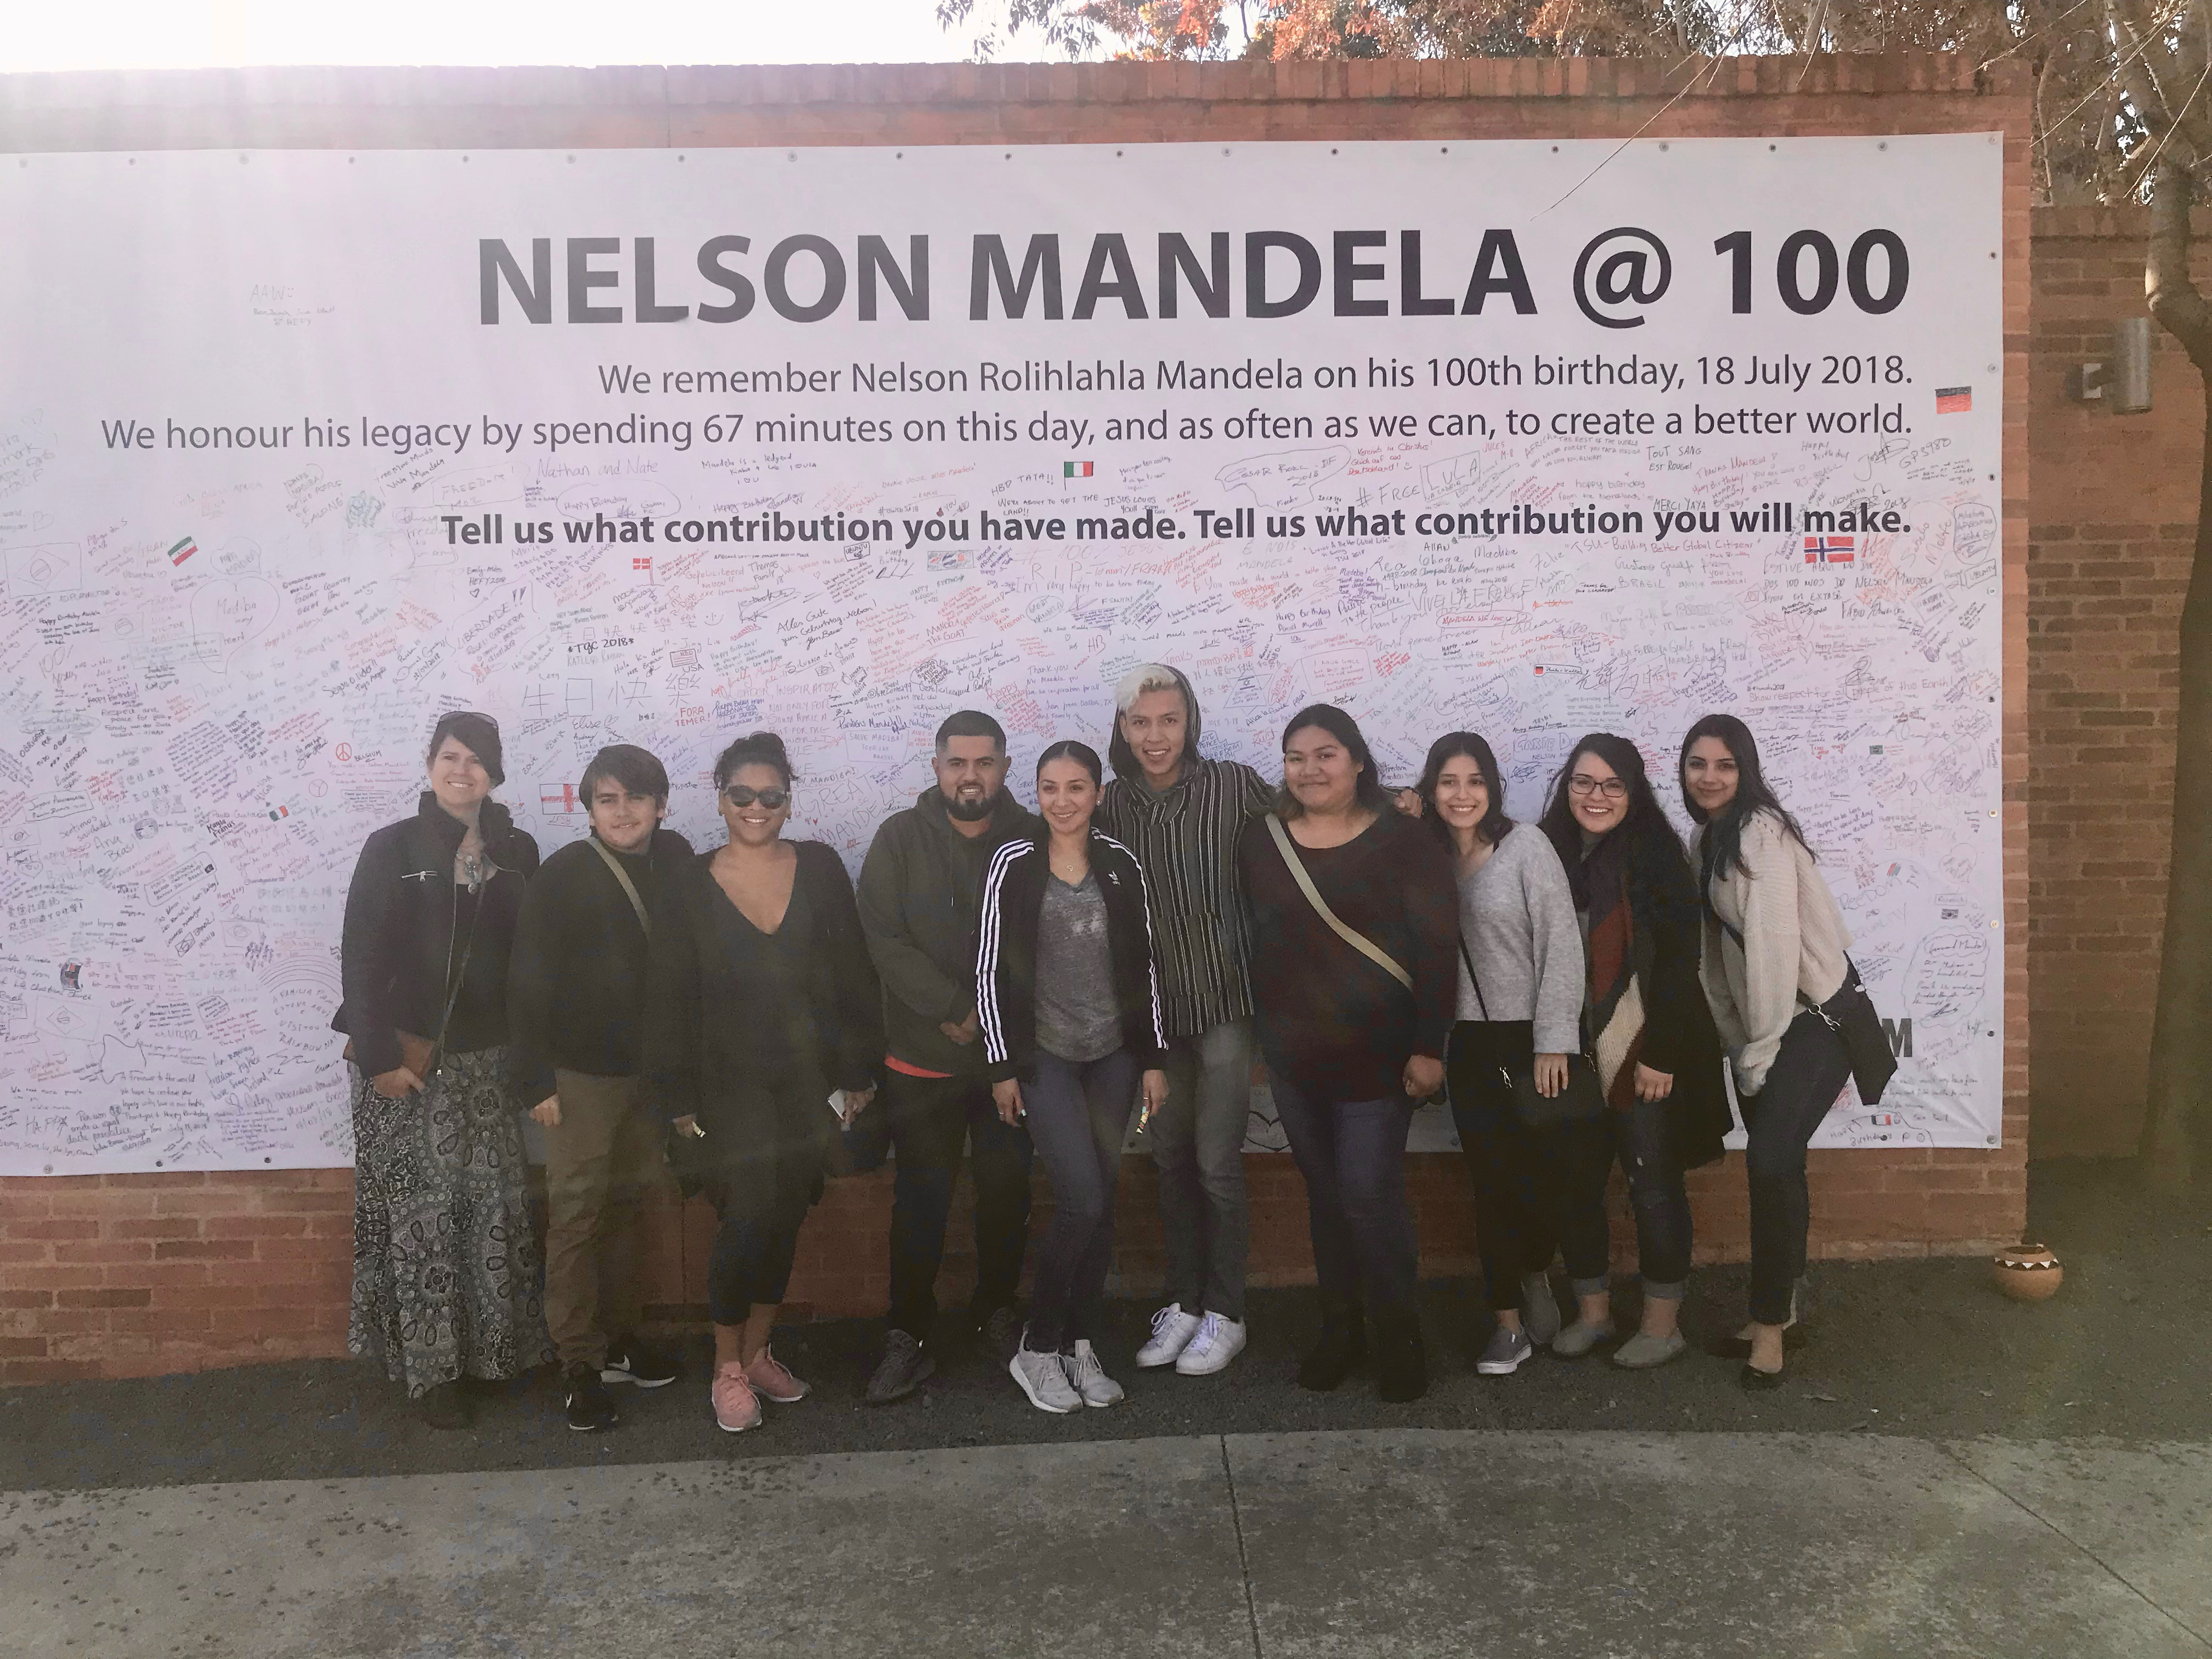 CSUSB Students in Front of Nelson Mandela @100 Banner